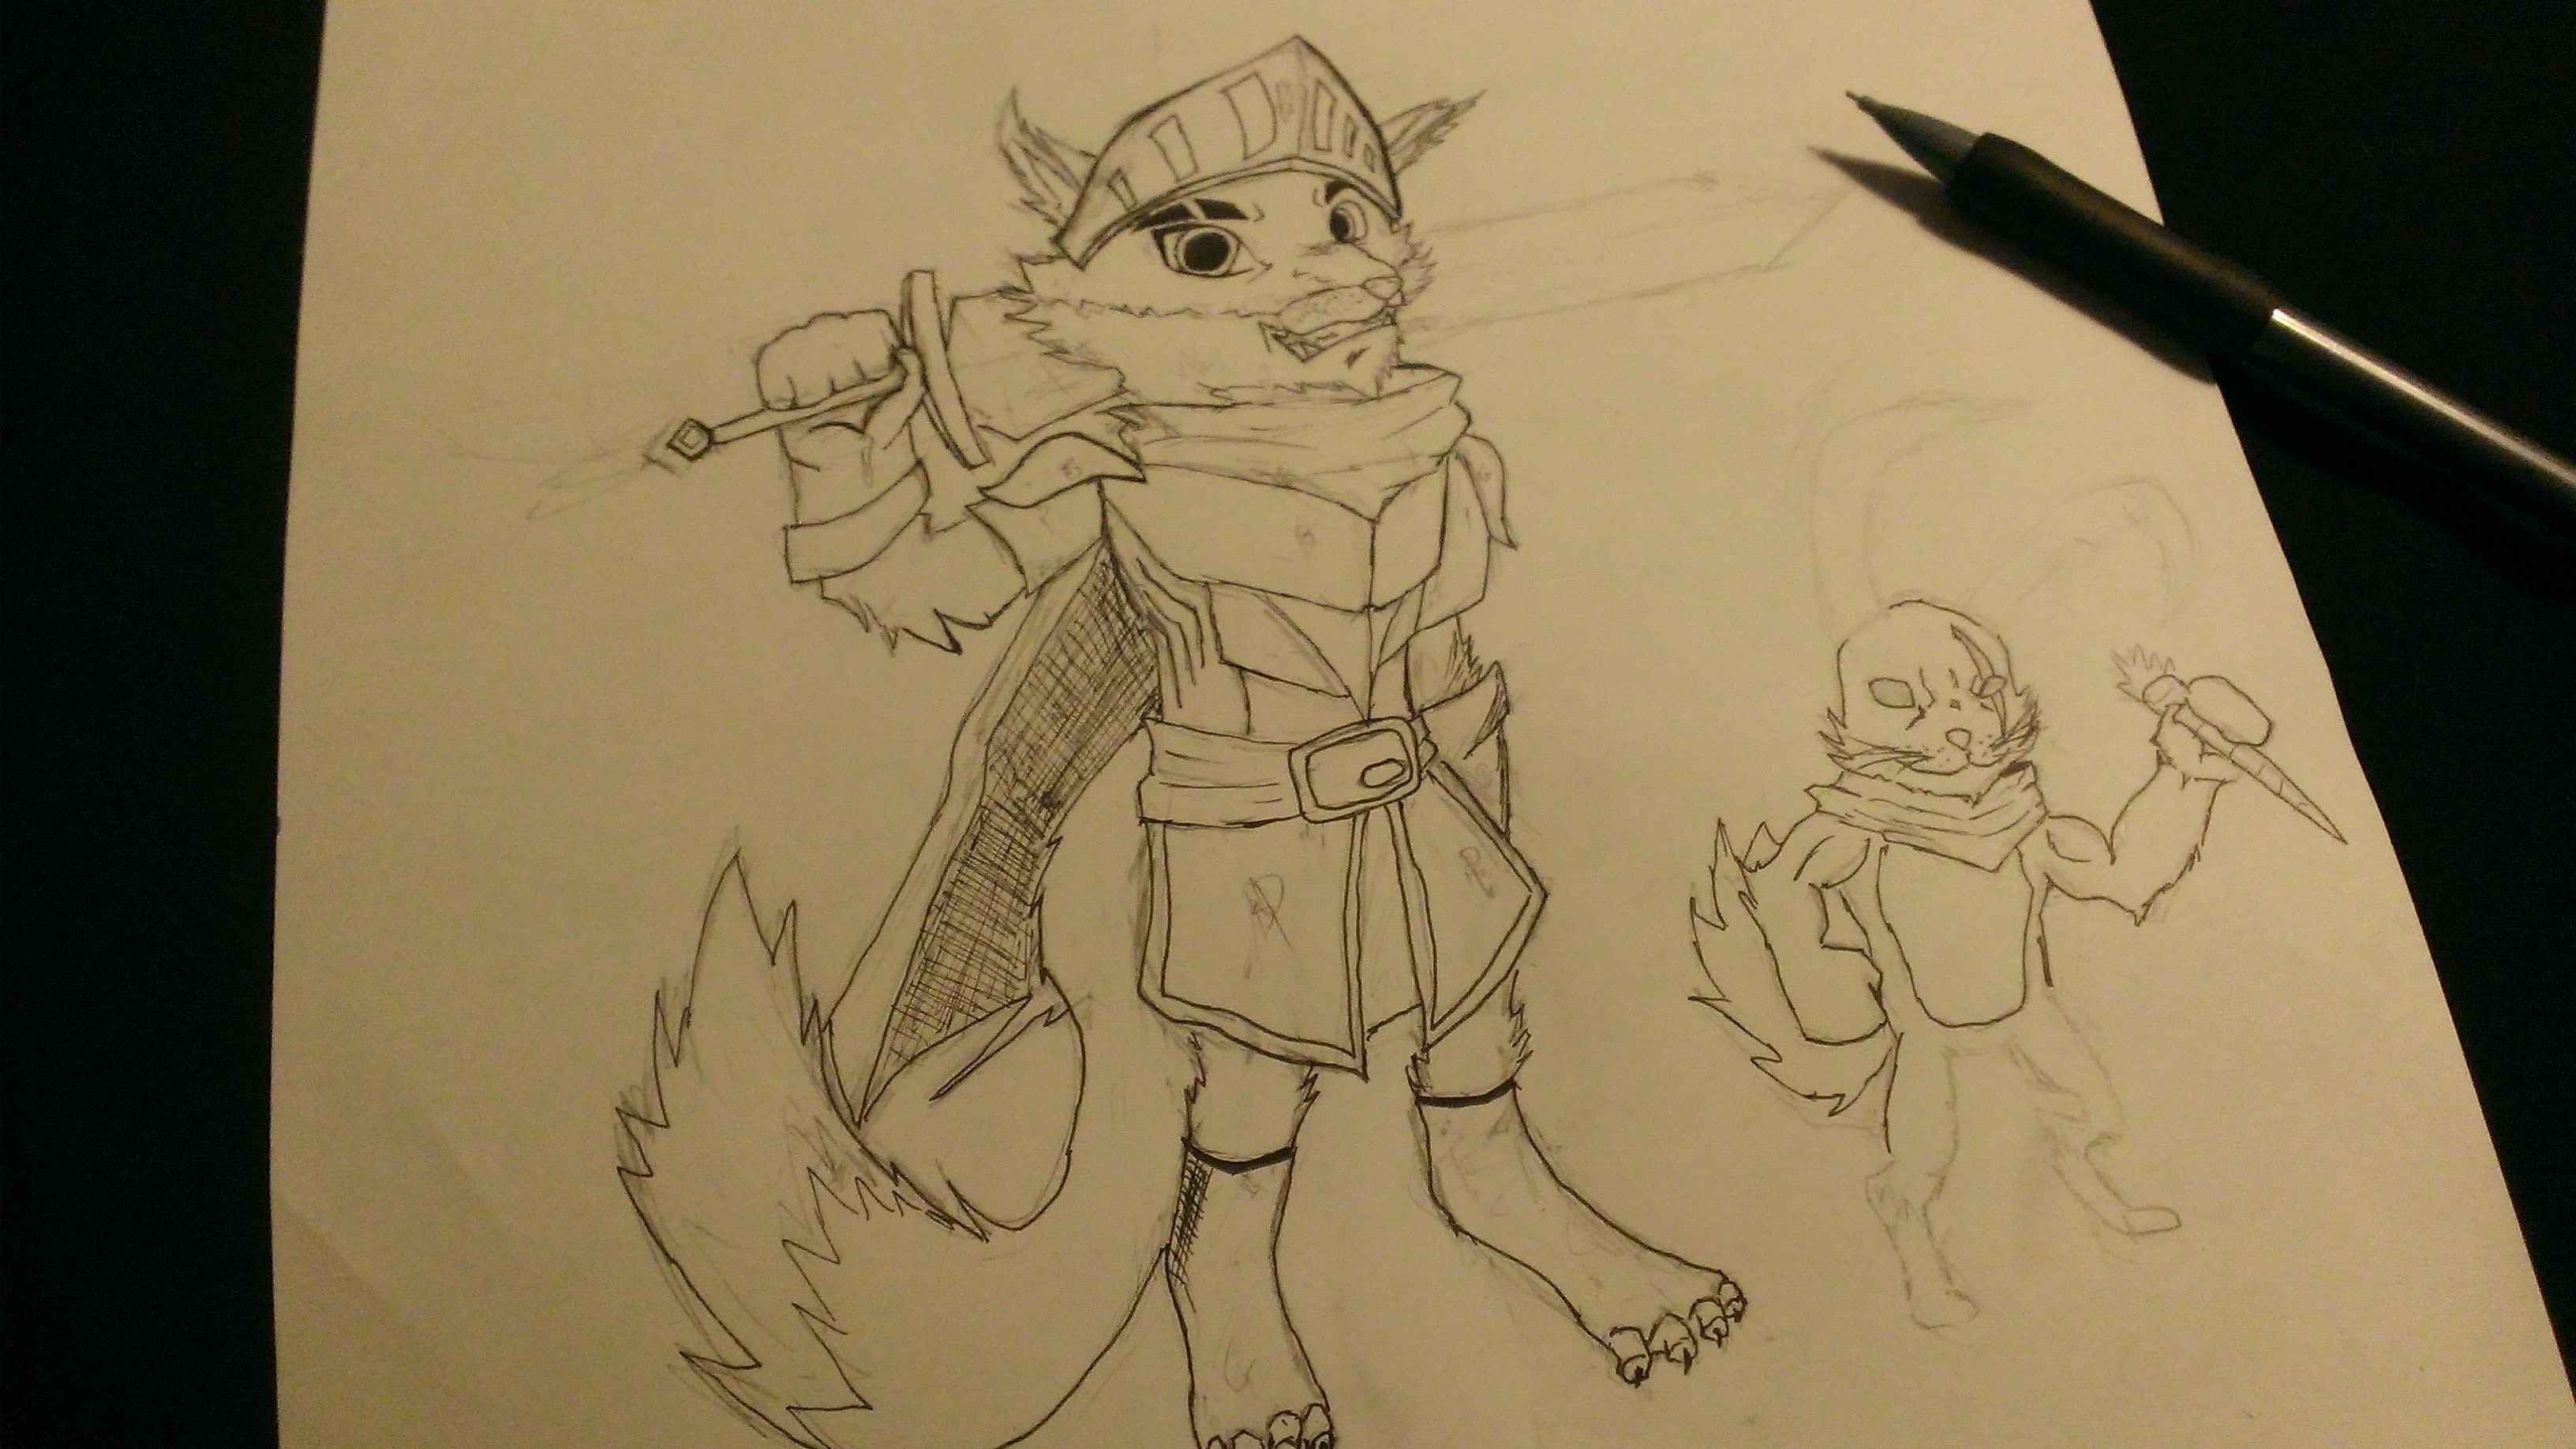 mid sketch of the hero and pet challange by GamingGeek